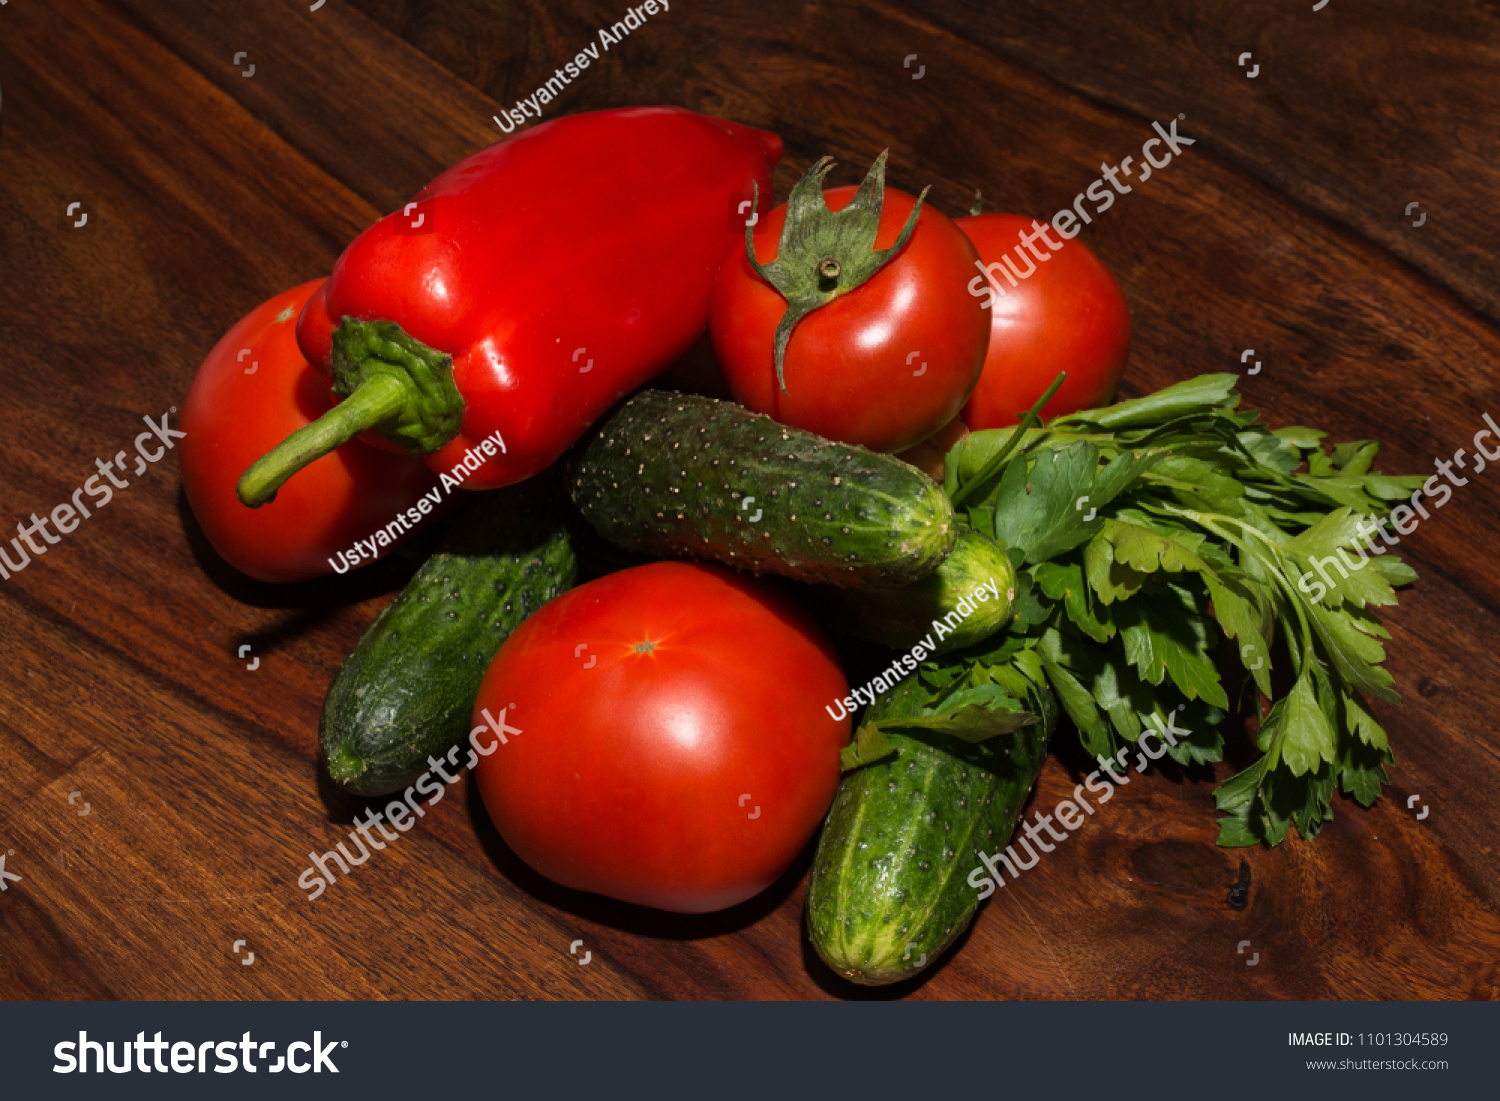 Tomato Wuppertal Fresh Pepper Cucumbers Tomatoes Celery On Stock Photo Edit Now